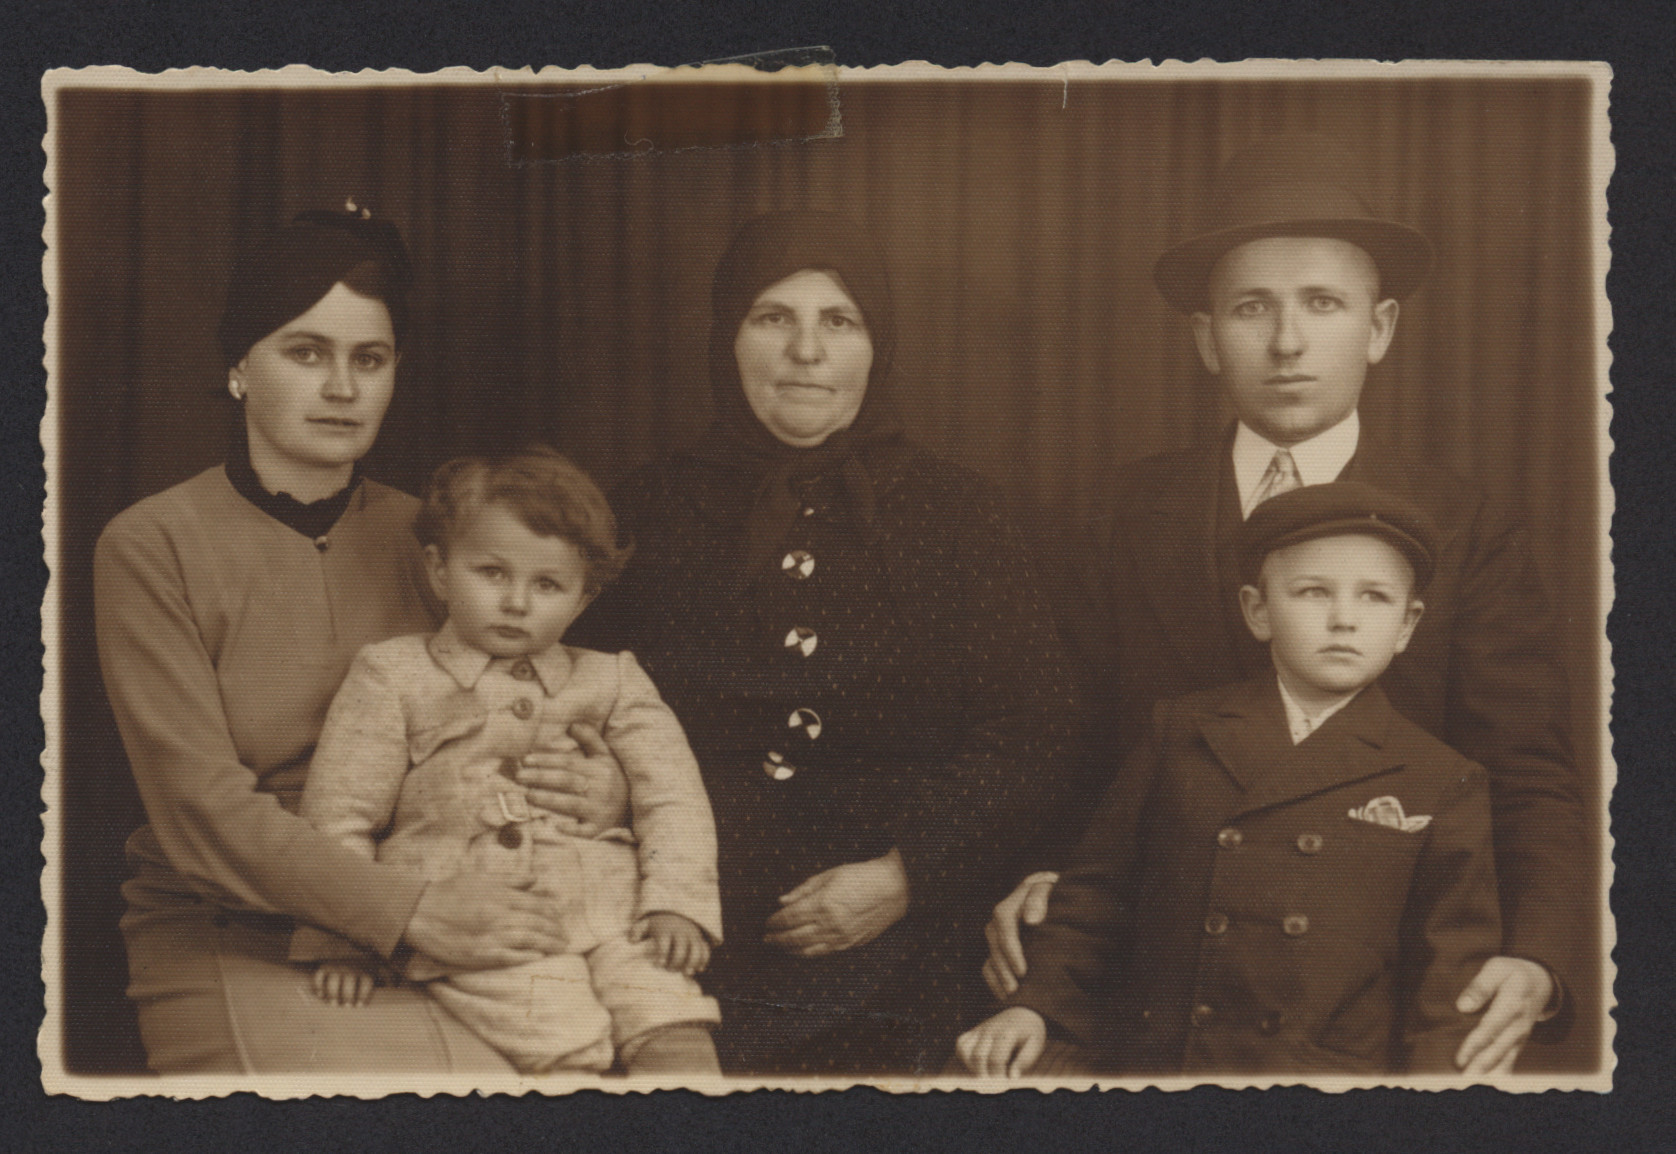 Portrait of a Jewish family in Solotvino.  Pictured (left to right) are Malka Kramer holding Ester, Baba Laya Kaufmann, and Hershel Kramer holding Moshe Smuel.  They had one other son named Yitchock.